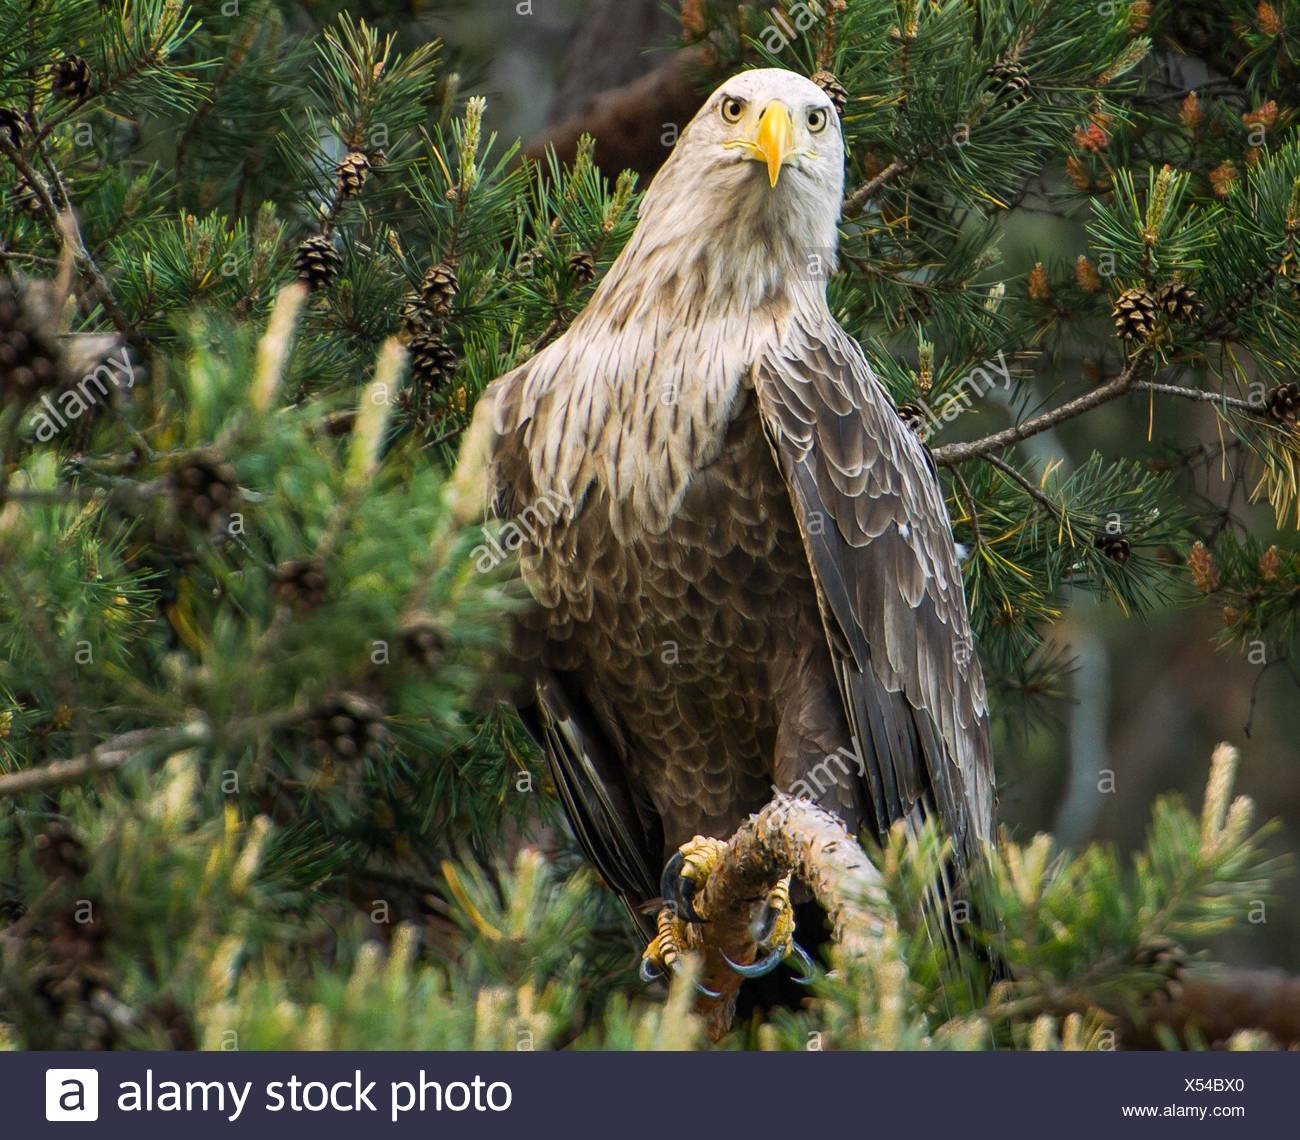 Bird of prey - Stock Image